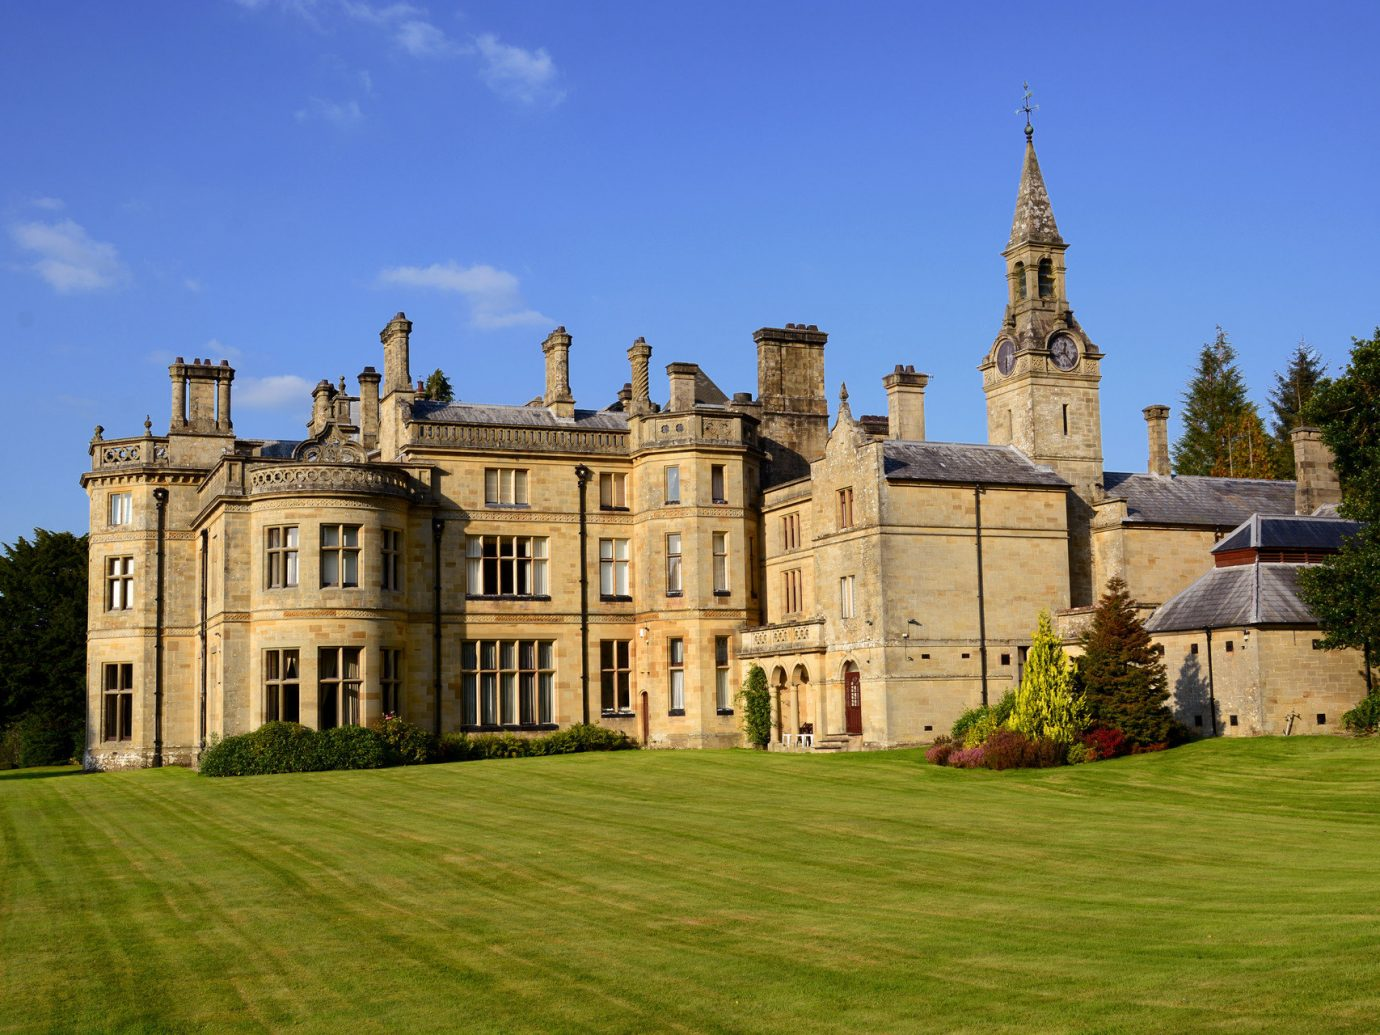 Trip Ideas grass sky outdoor building château stately home estate landmark house Architecture palace castle mansion manor house grassy monastery facade place of worship abbey old stone lush